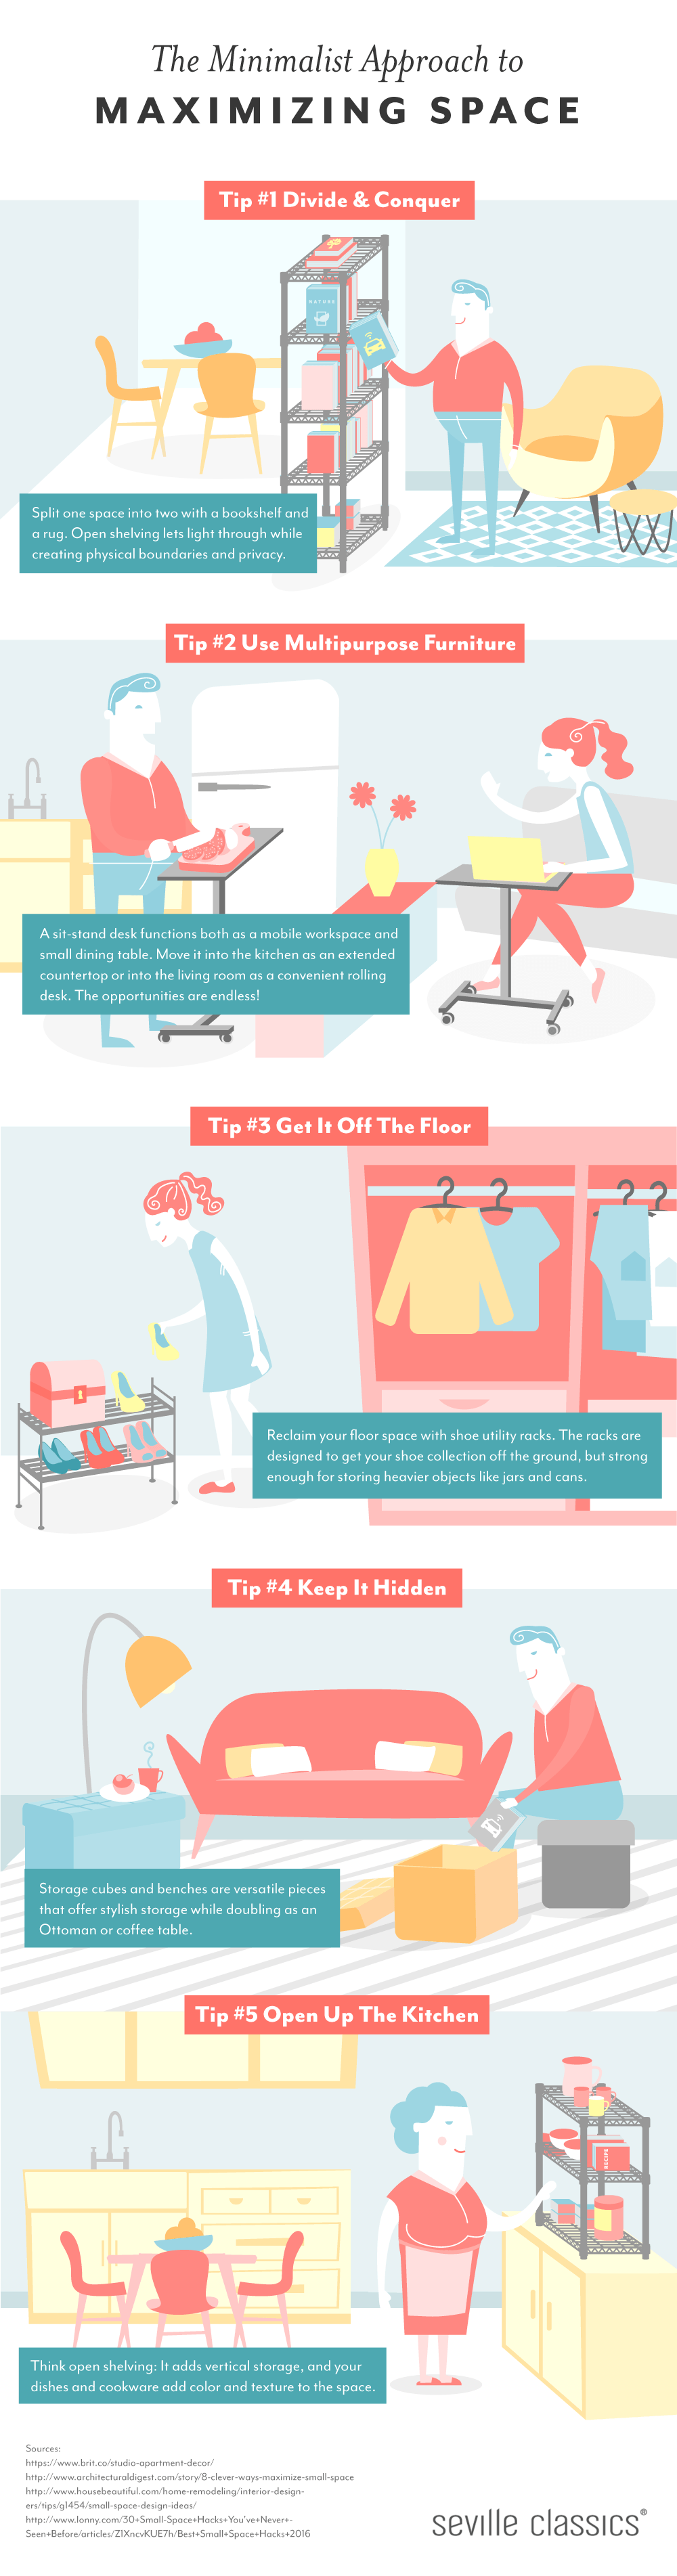 The Minimalist Approach to Maximizing Space Infographic